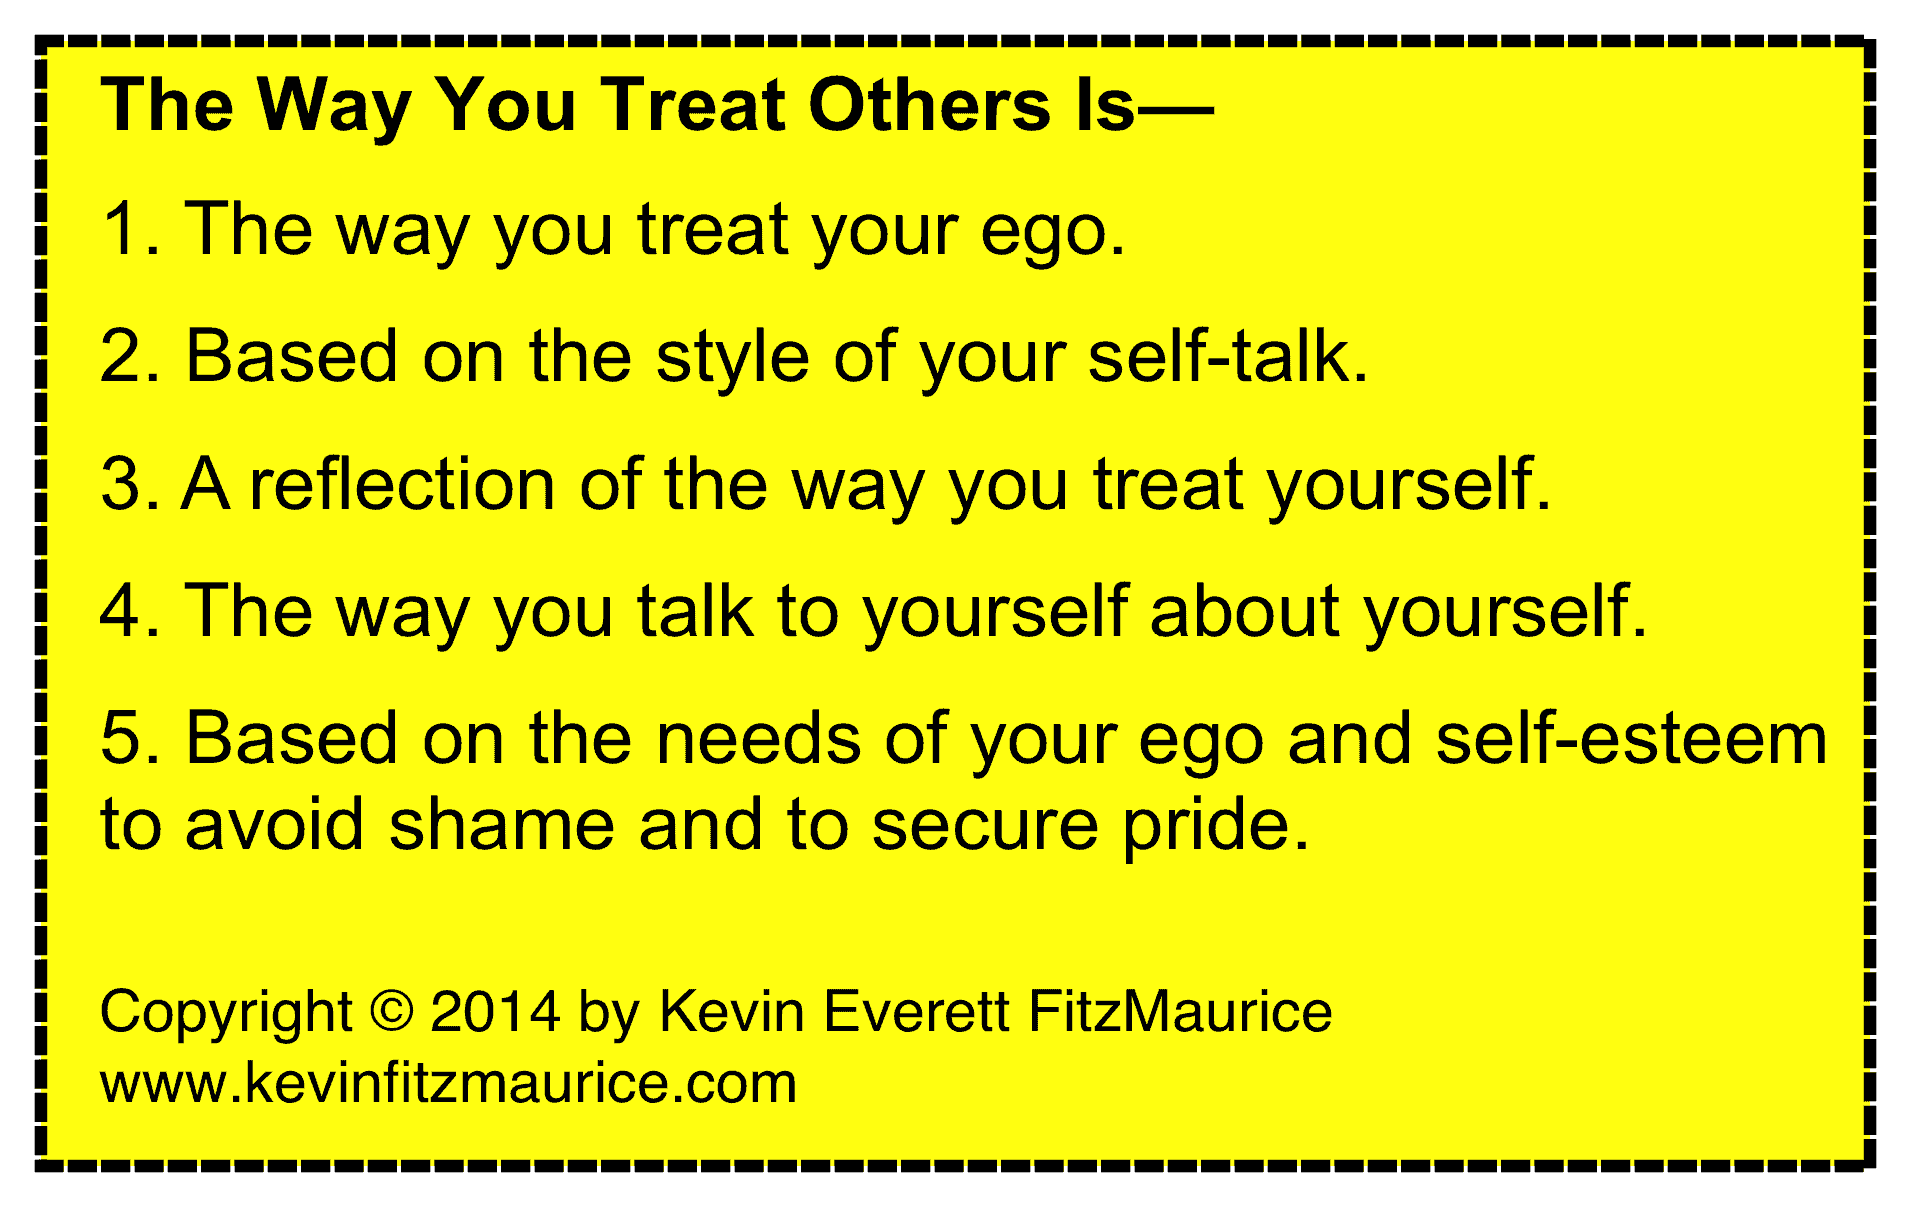 treat others like self